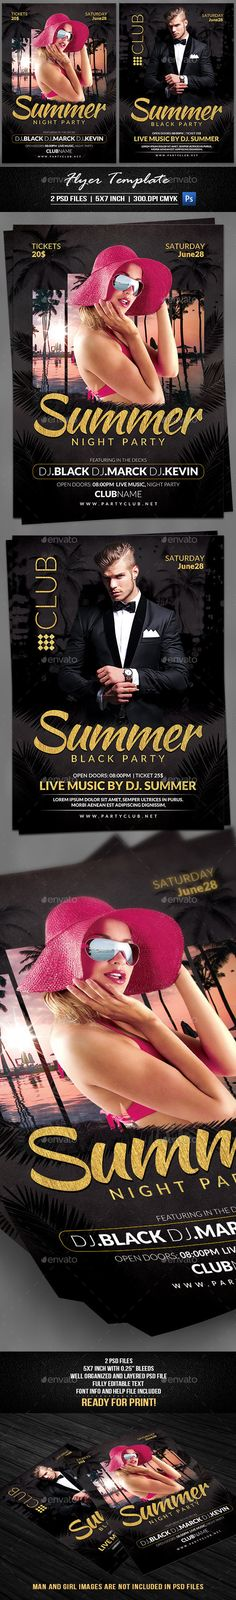 #Summer #Night Party #Flyer Template - Flyers Print Templates Download here: https://graphicriver.net/item/summer-night-party-flyer-template/19719091?ref=alena994